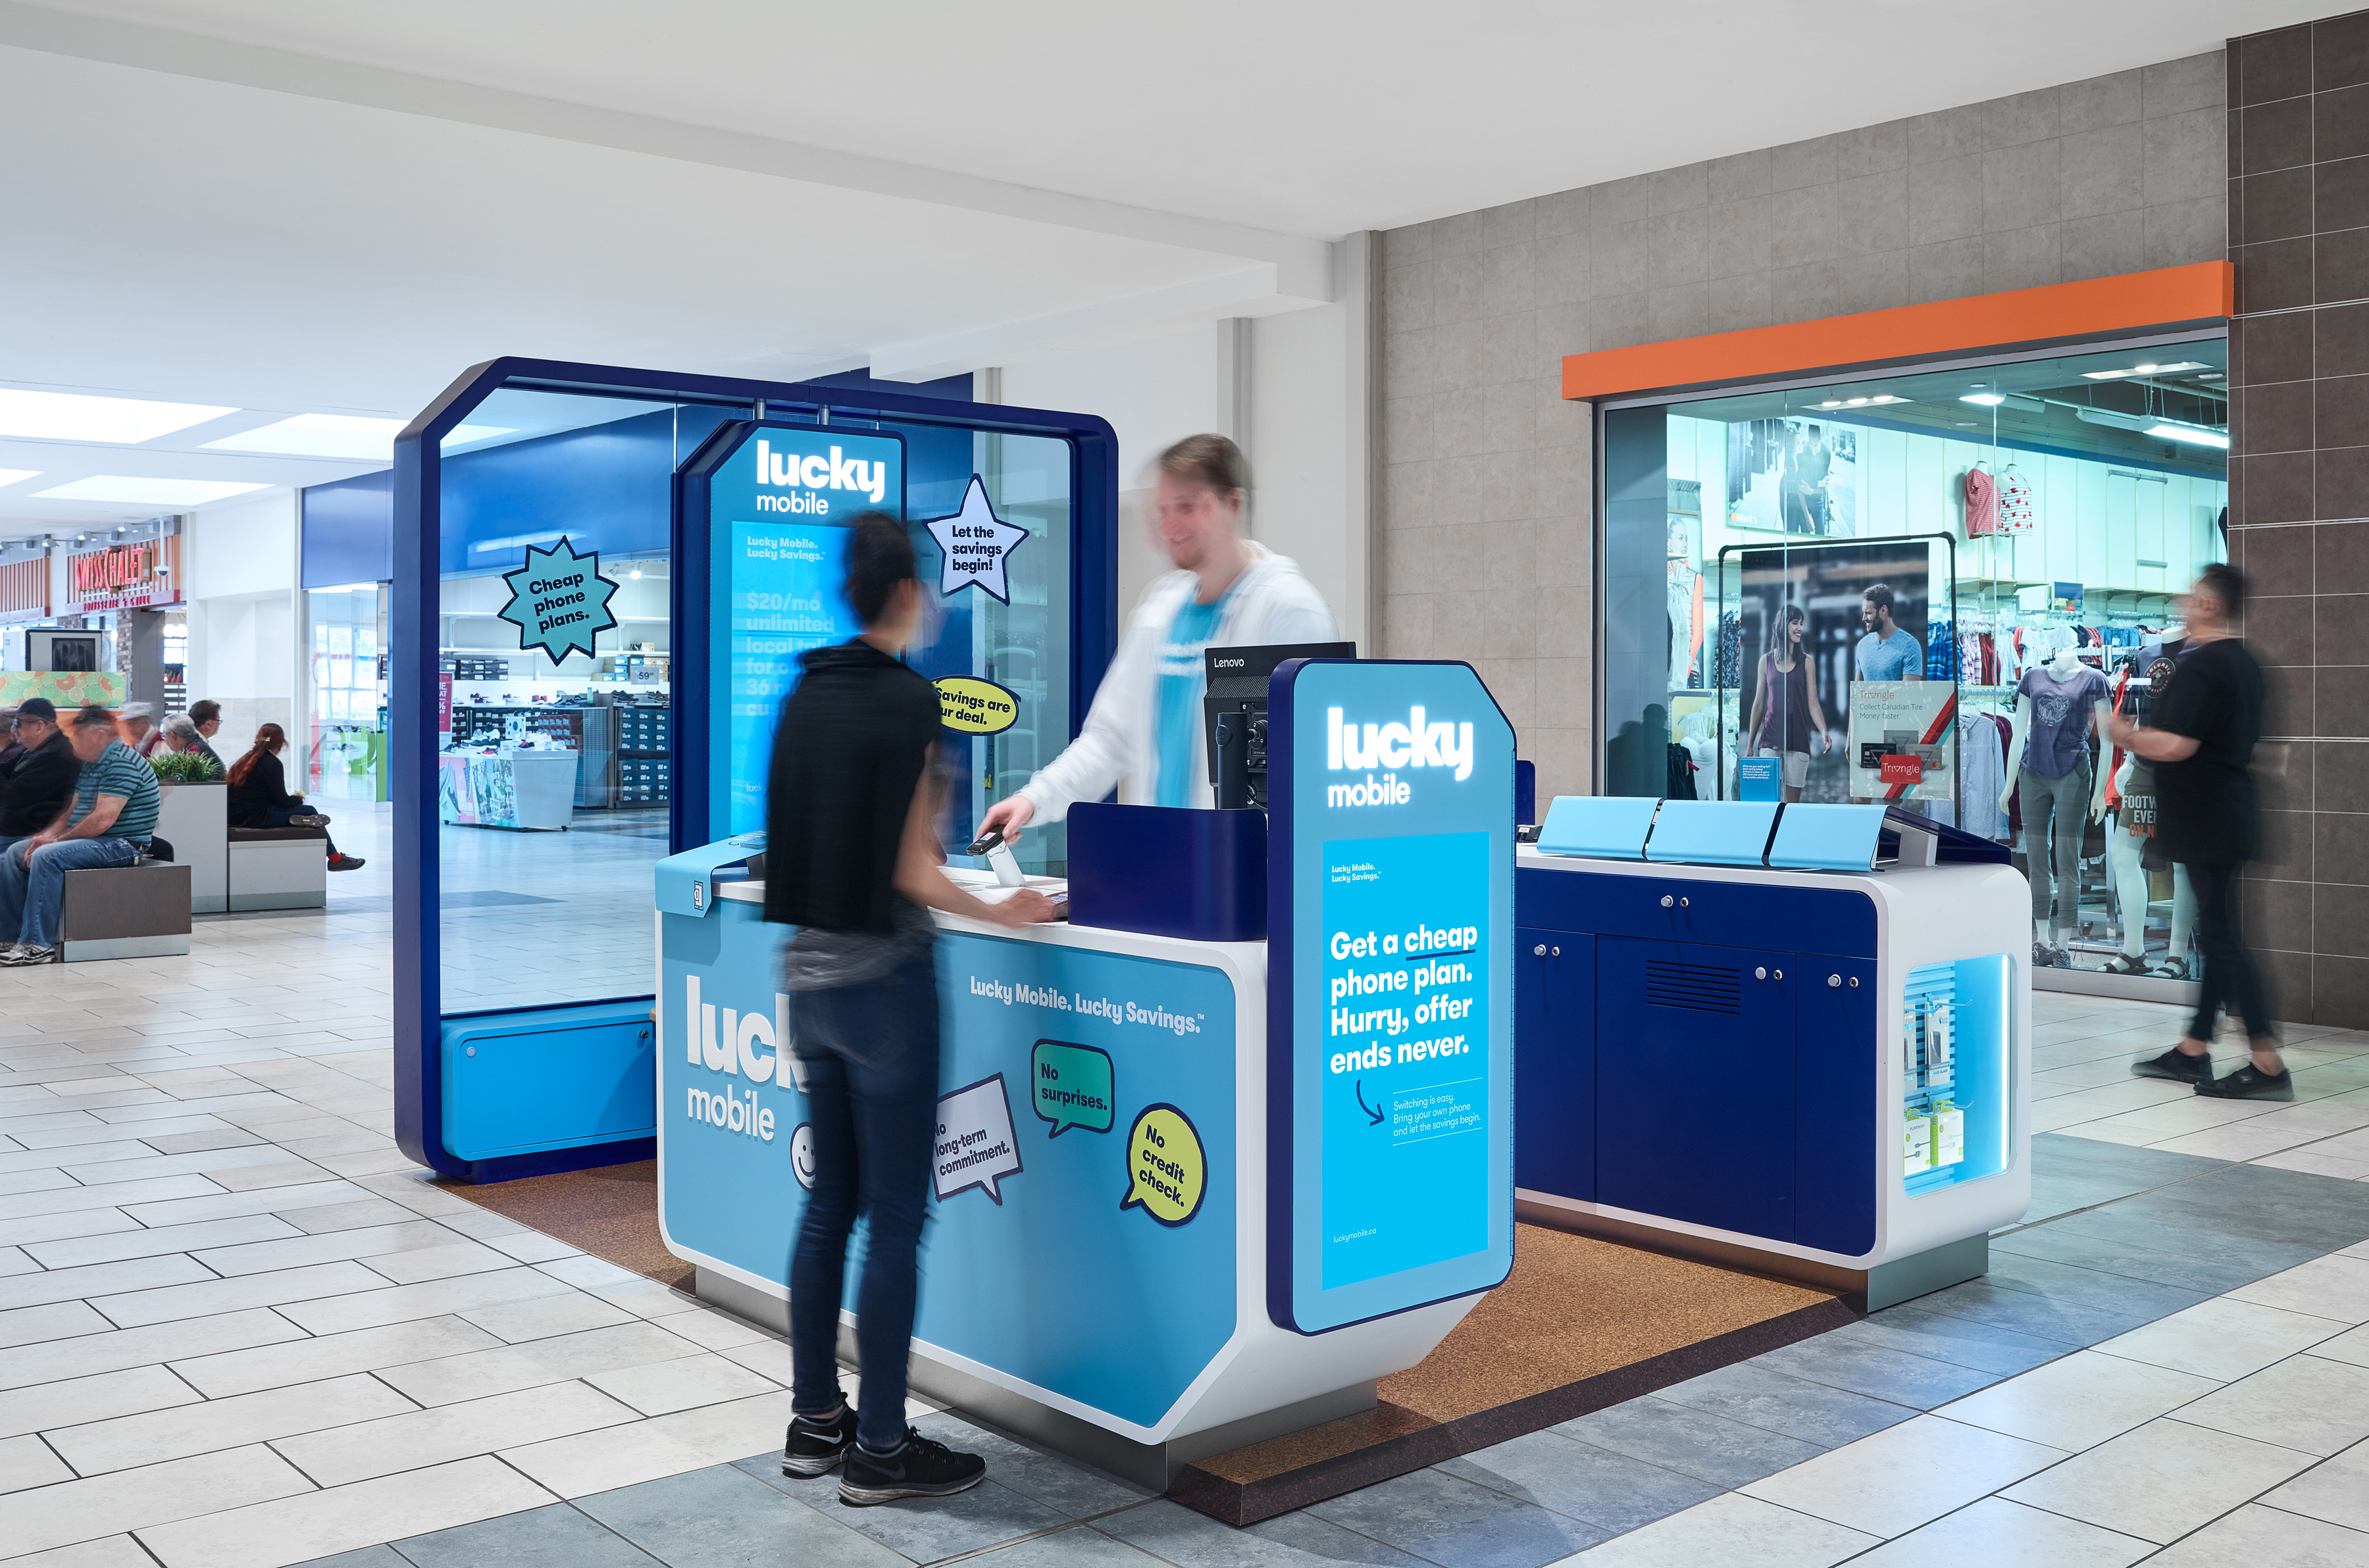 Lucky Mobile Kiosk with blue signage and blue glass wall